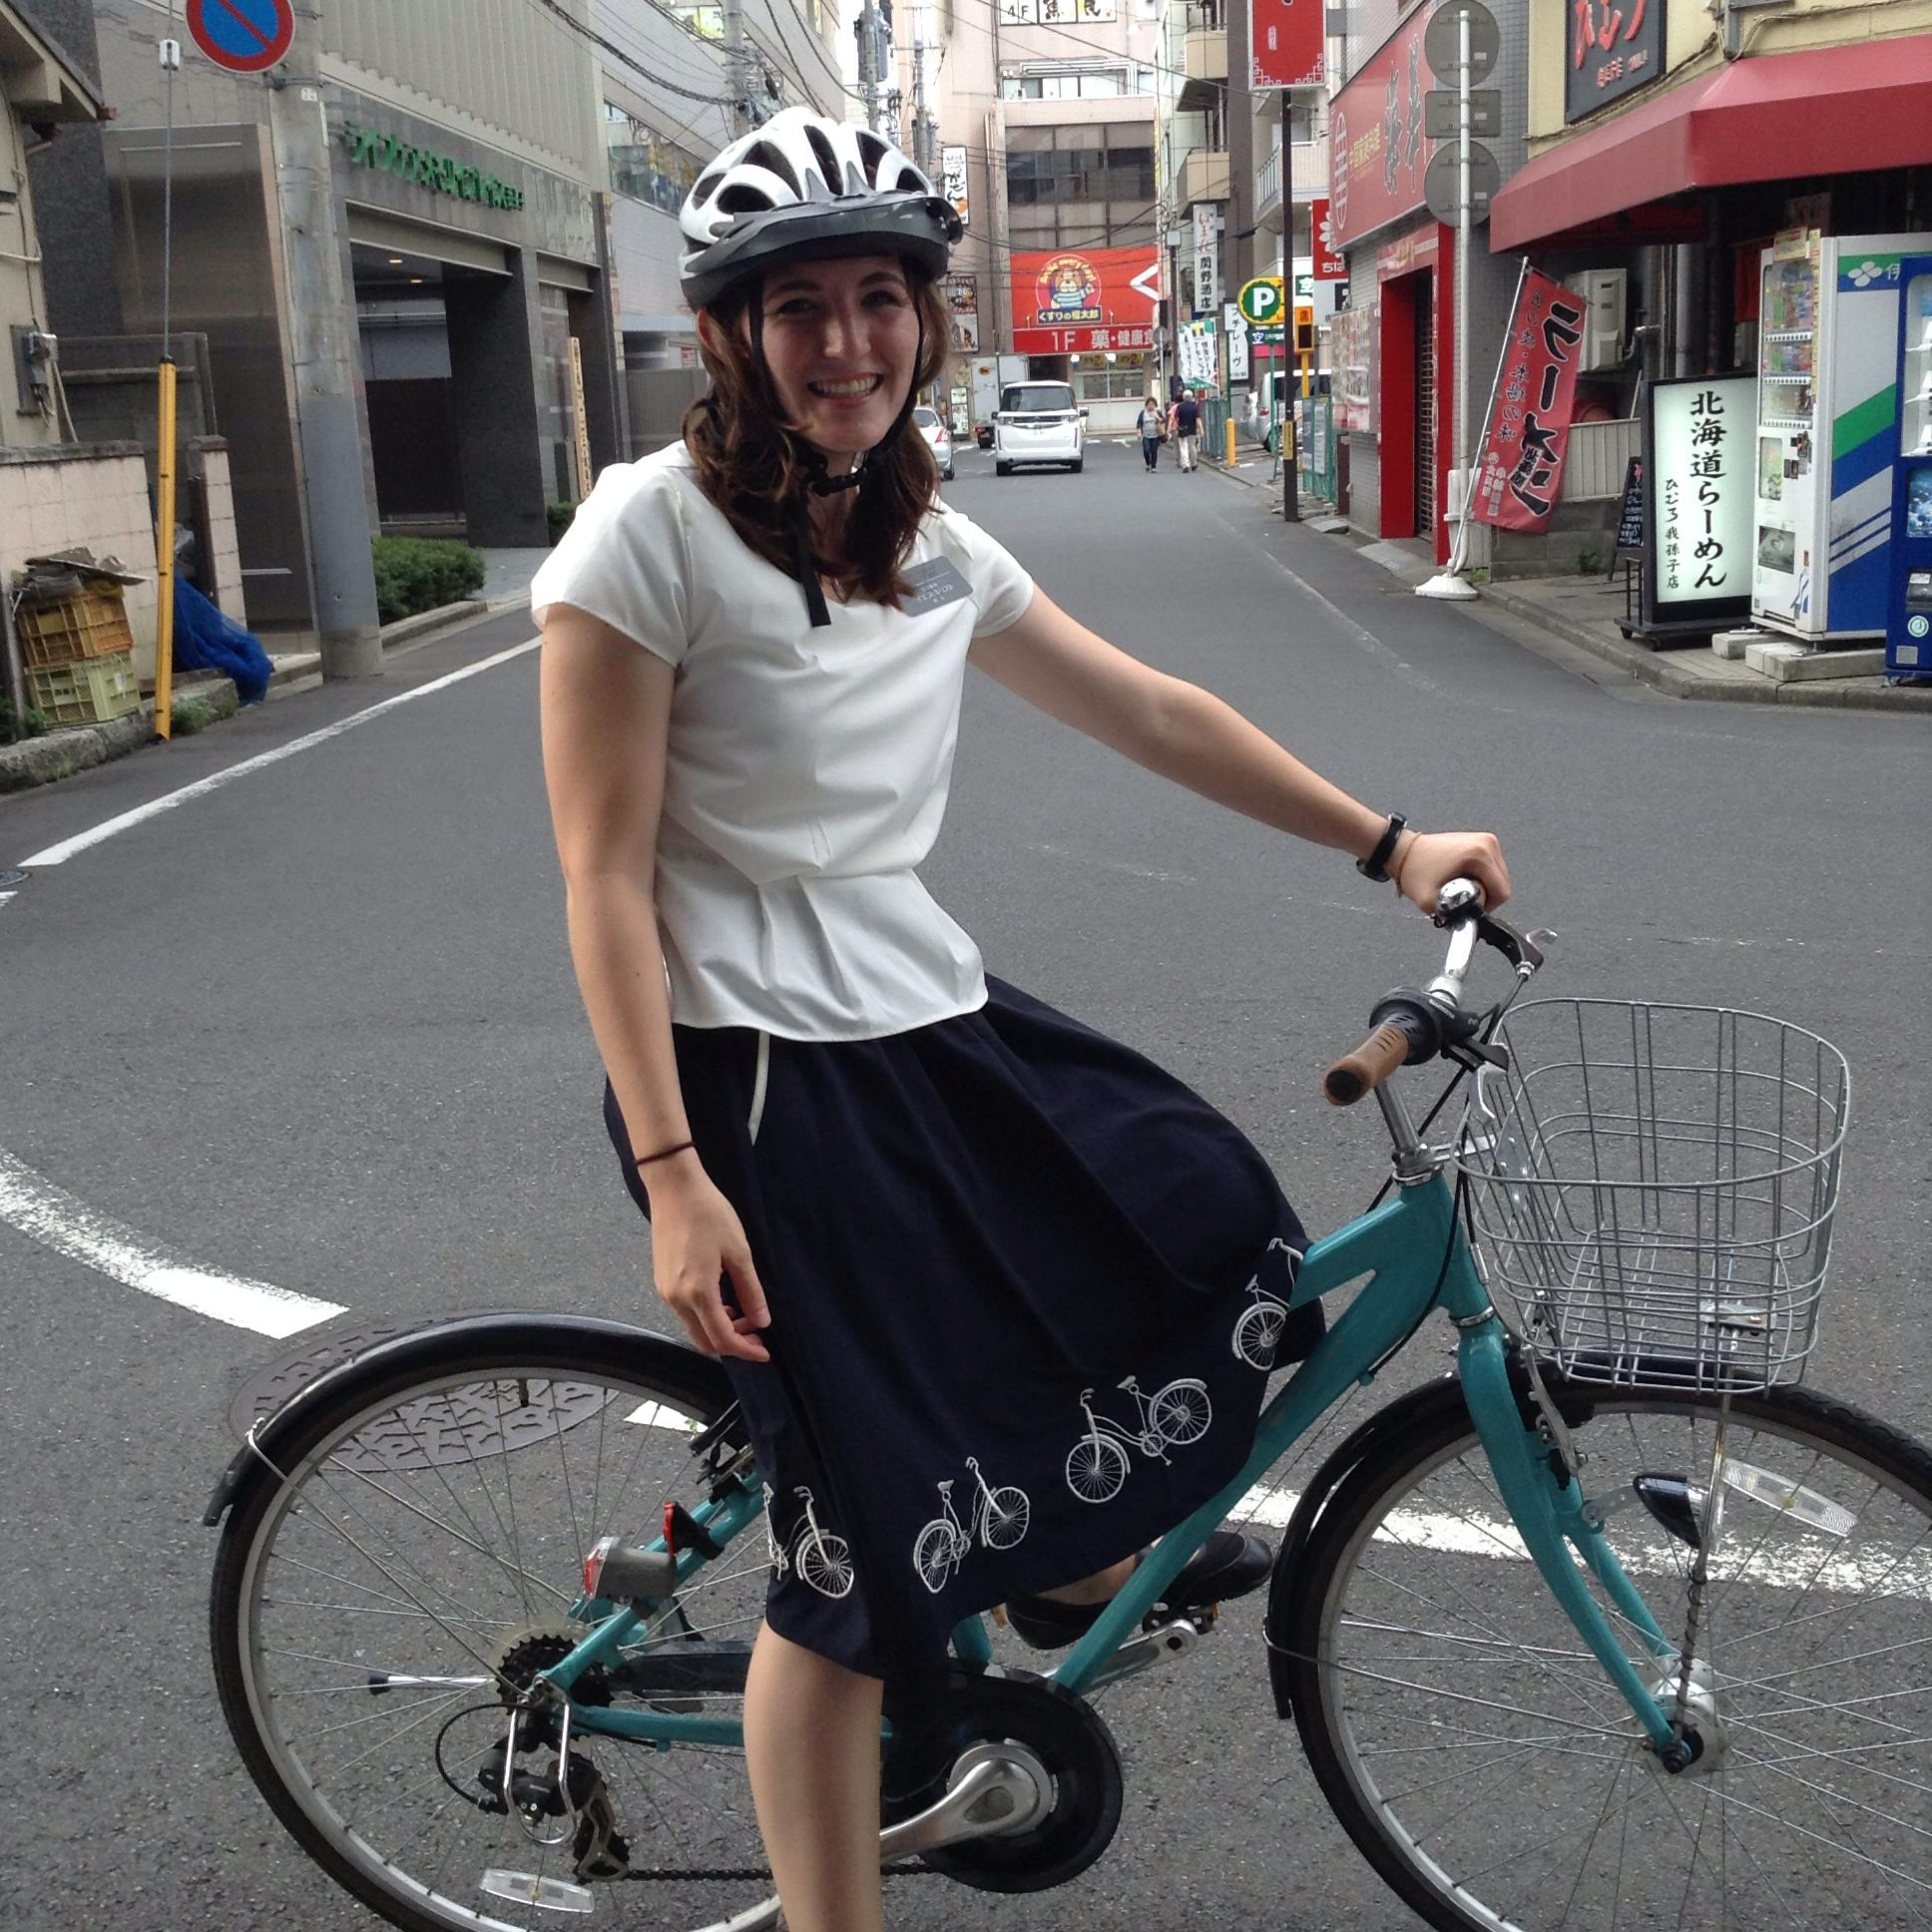 Anna Savage Hodge donned a skirt and pedaled a bicycle during her mission to Japan. Now she wears a U.S. Army officer's uniform that includes a storied Ranger Tab.